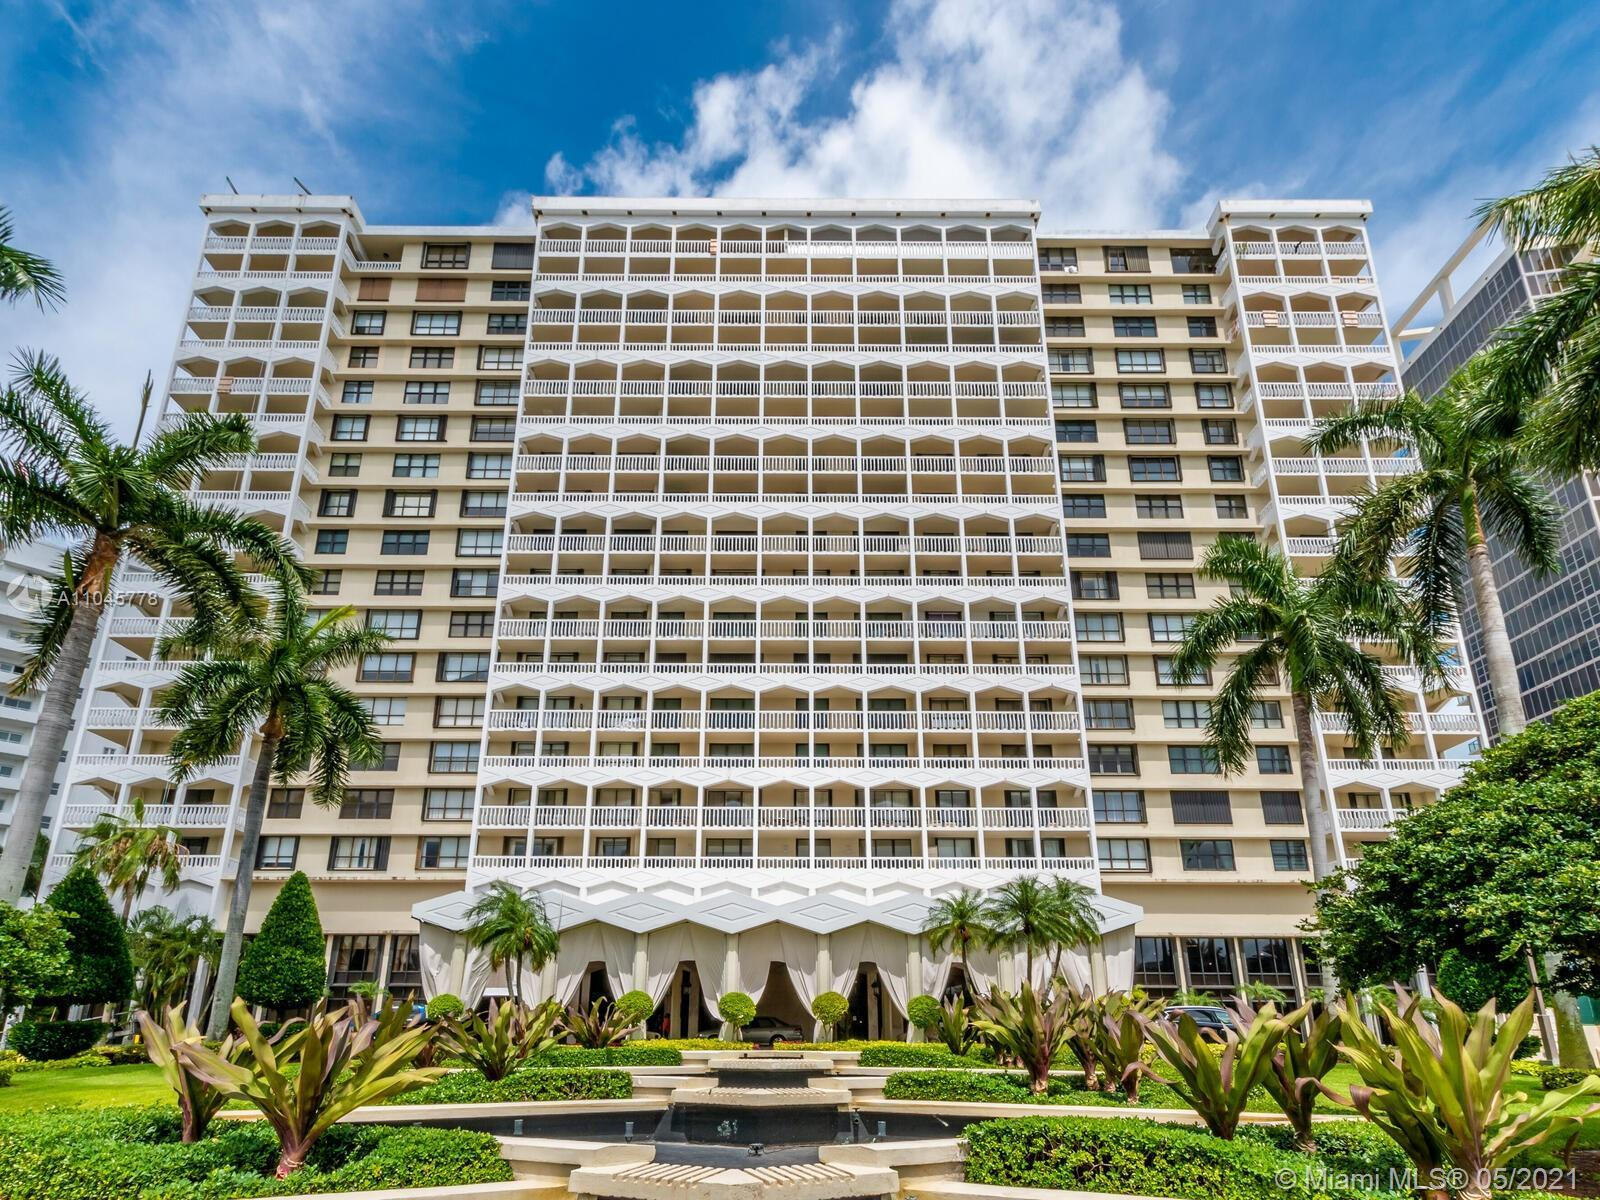 This lovely 1,388 sqft 2 bedroom apartment has the best ocean view for an apartment this size. Kitc